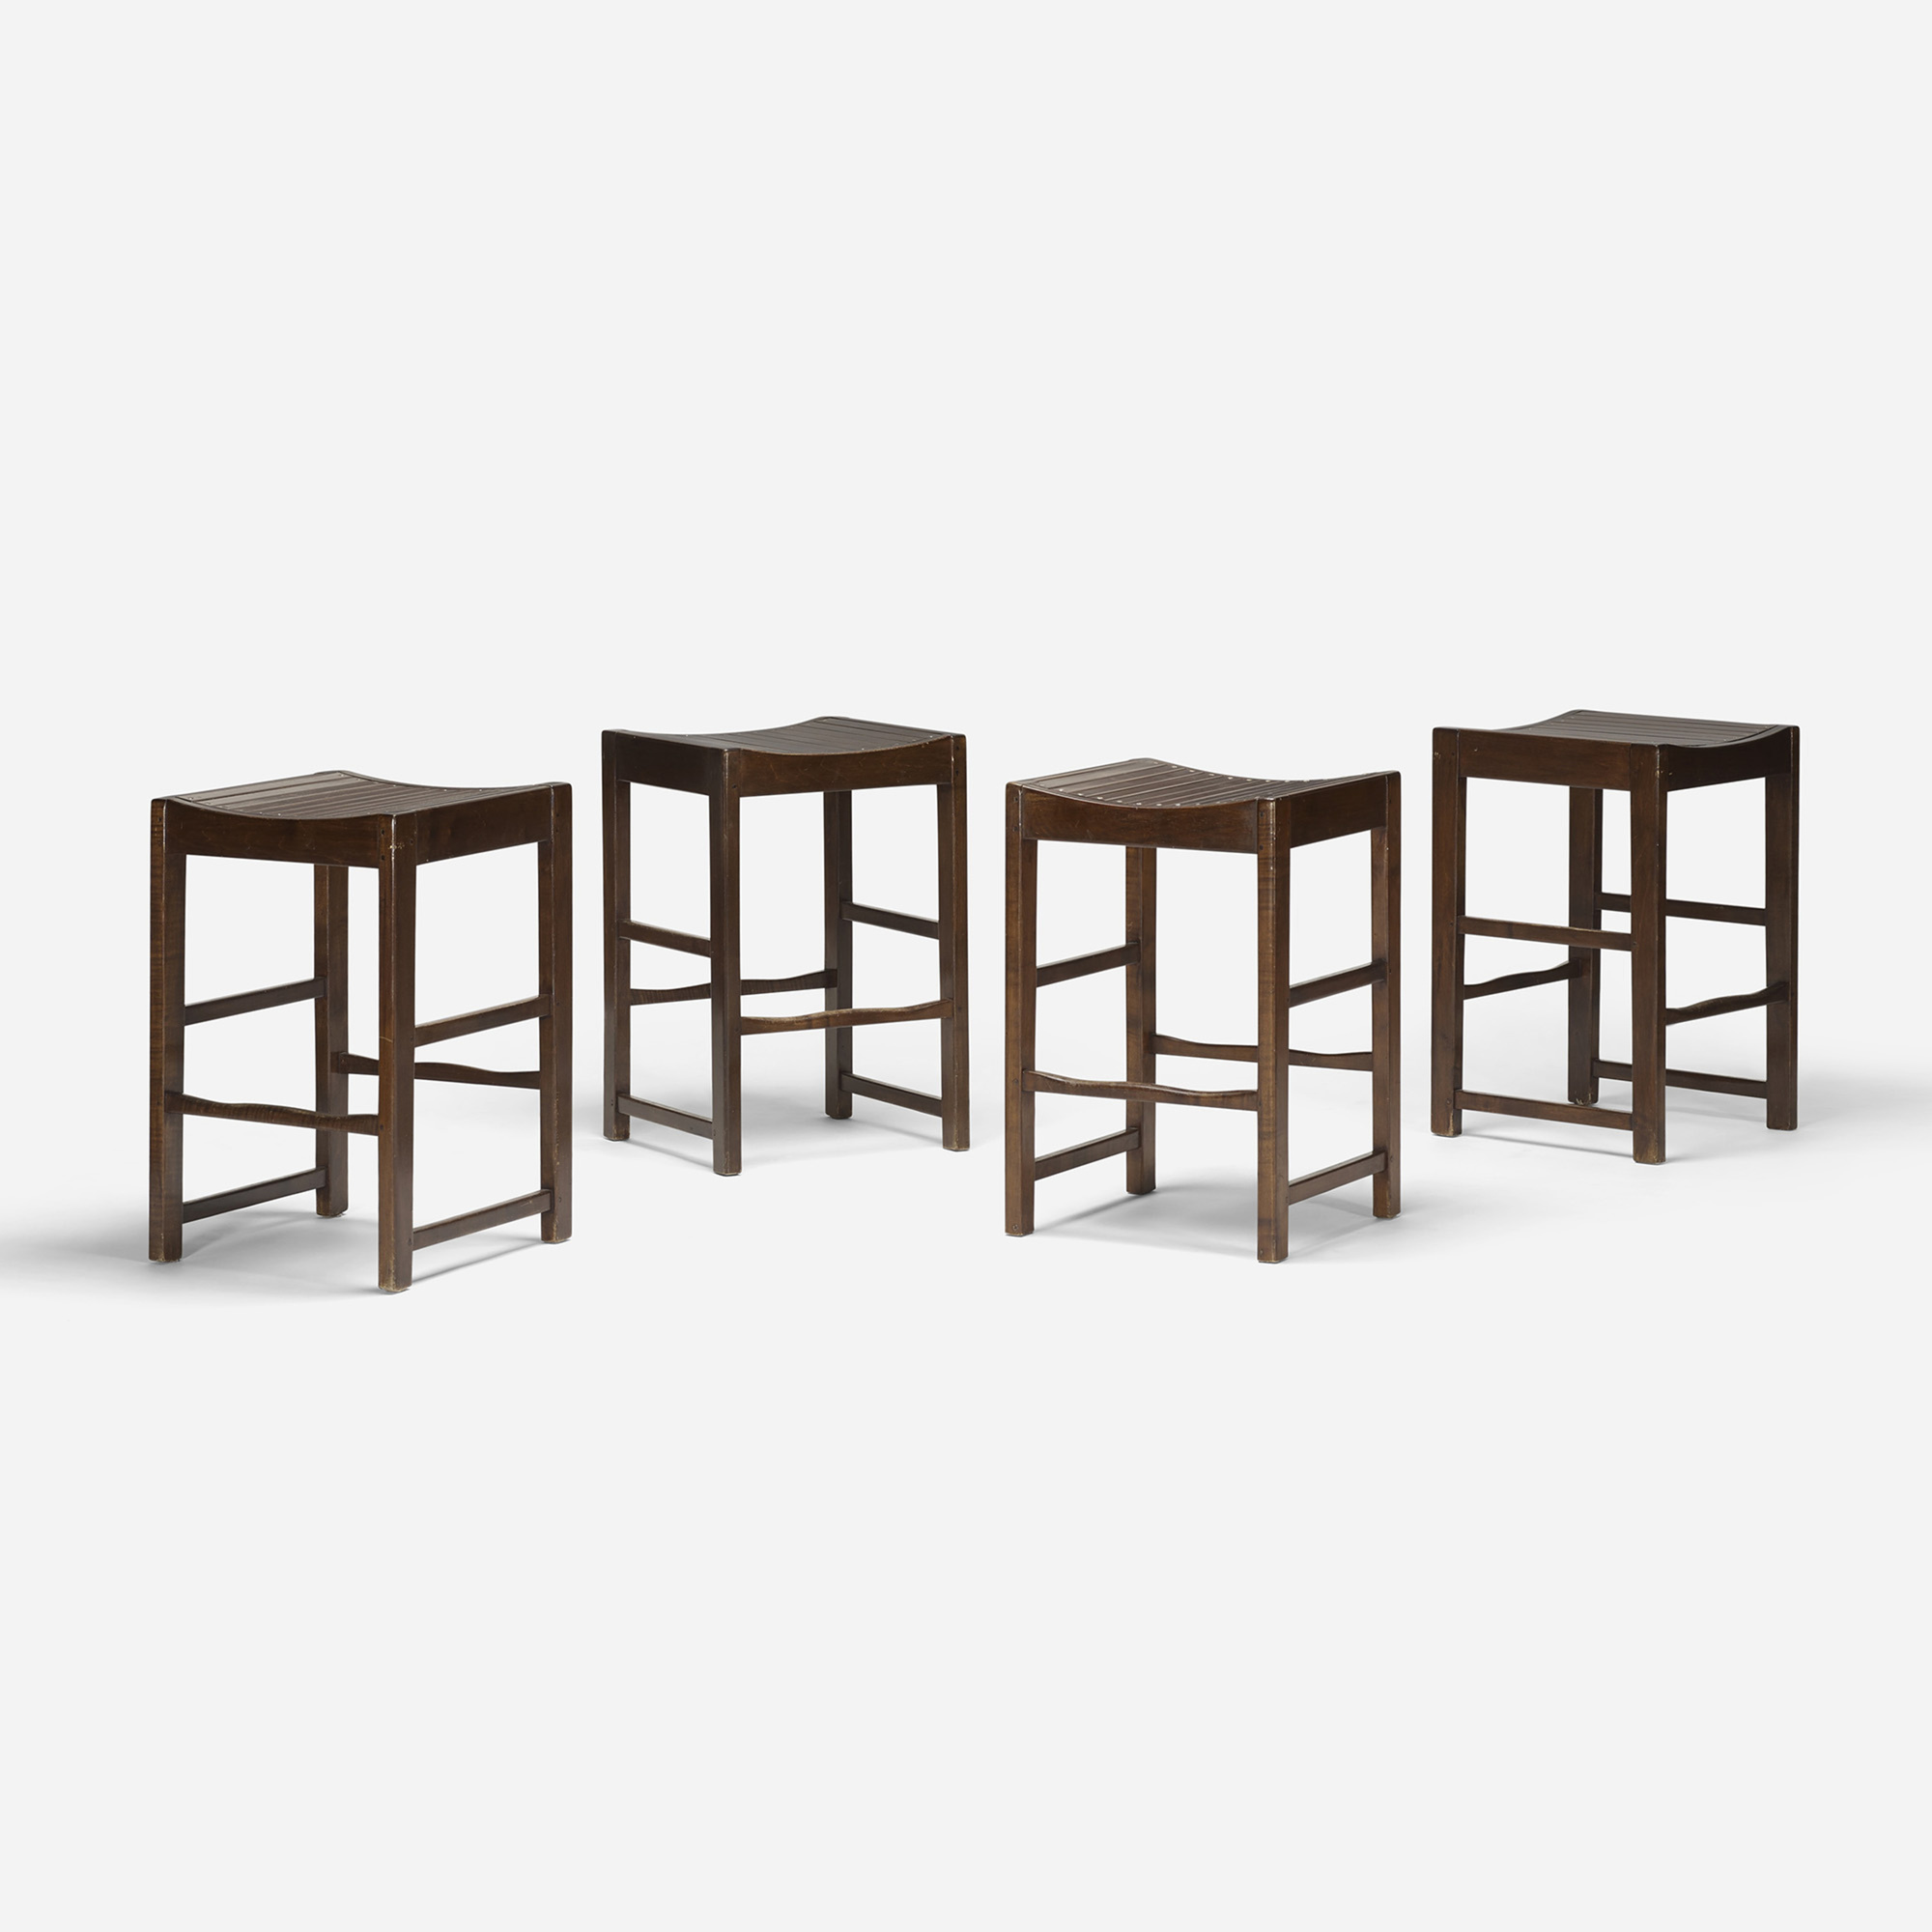 591: Modern / stools, set of four (1 of 2)